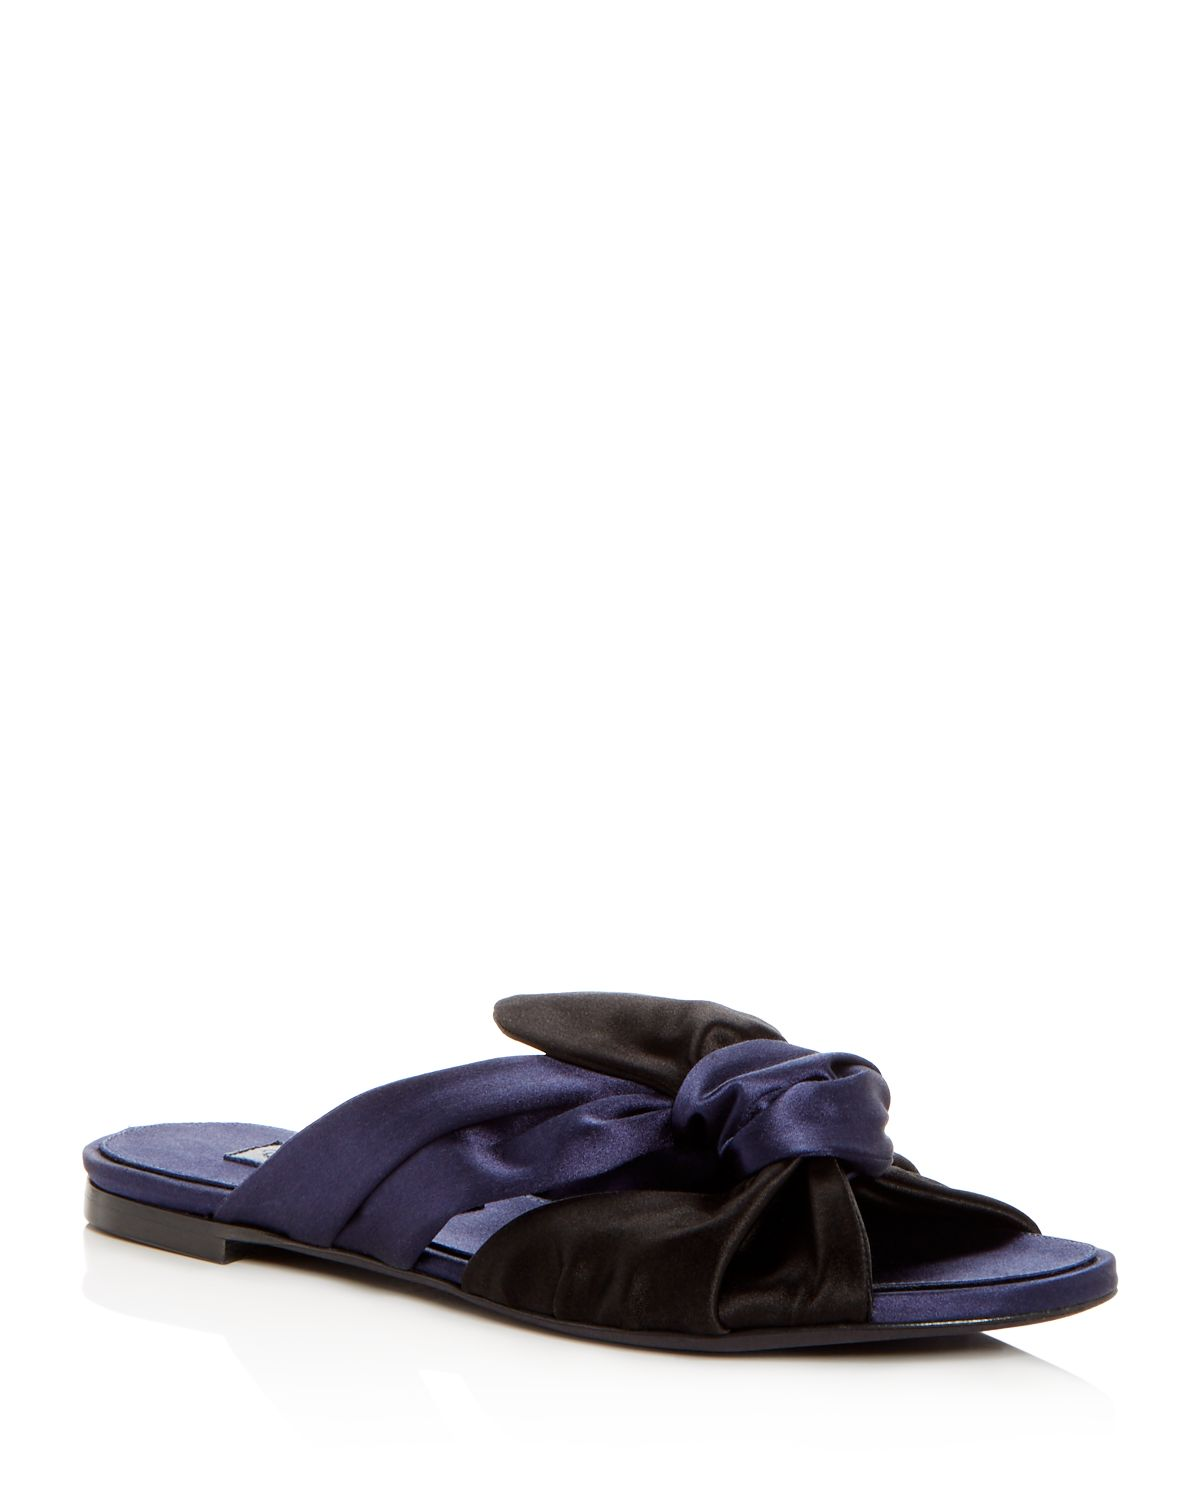 Oscar de la Renta Women's Piper Knotted Satin Slide Sandals